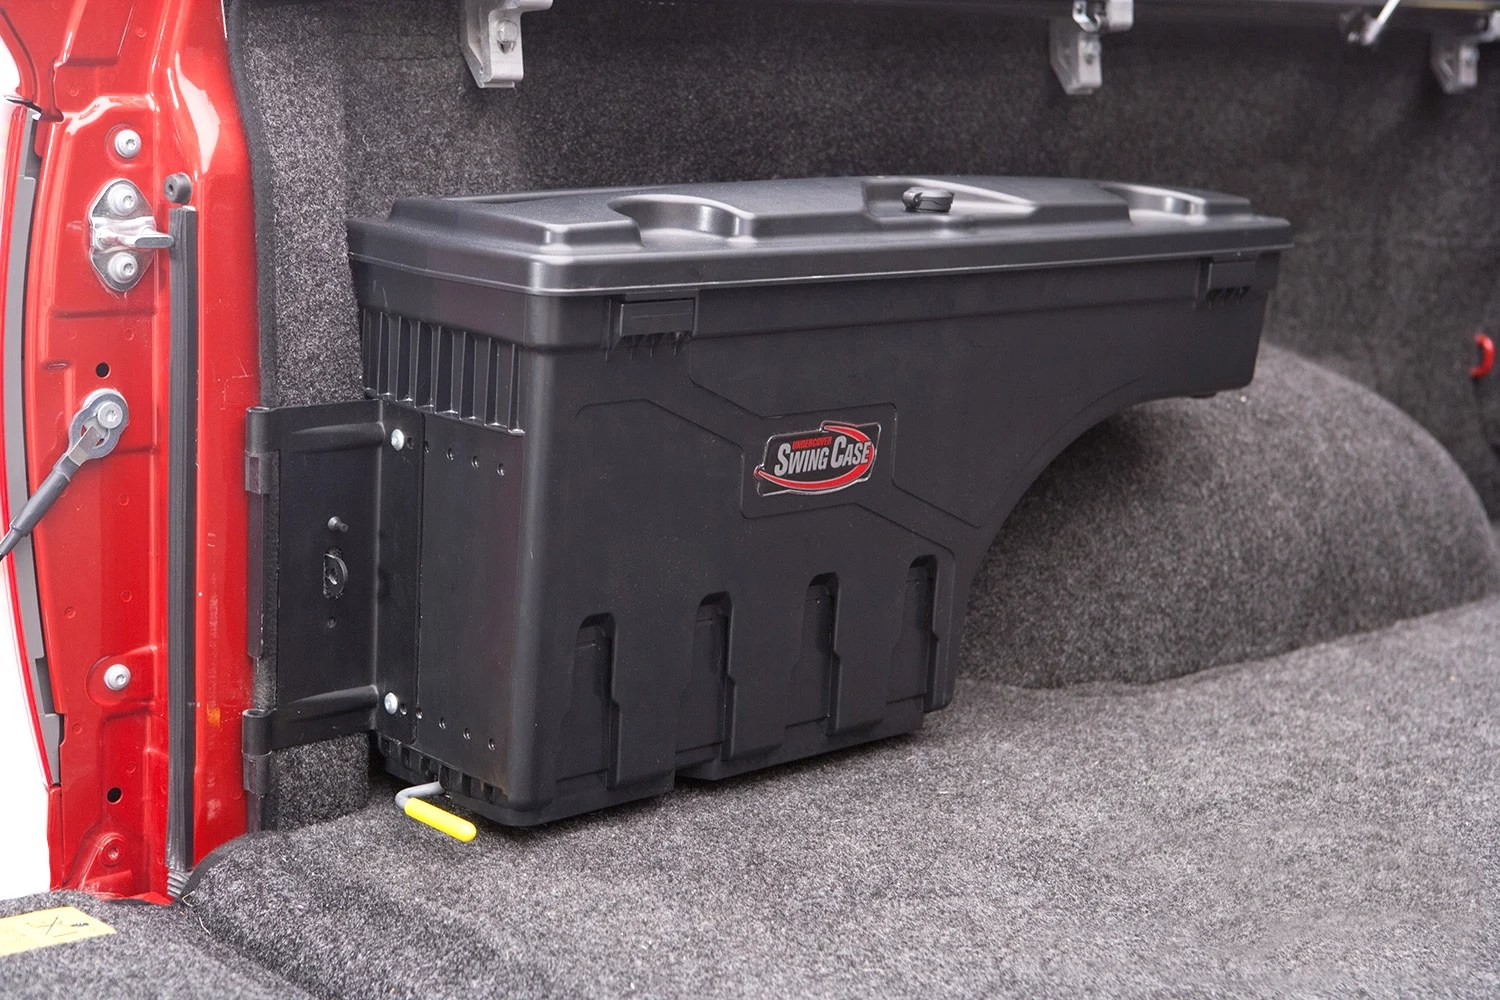 19972014 Ford F150 Undercover Swing Case Truck Toolbox  Undercover SC201P